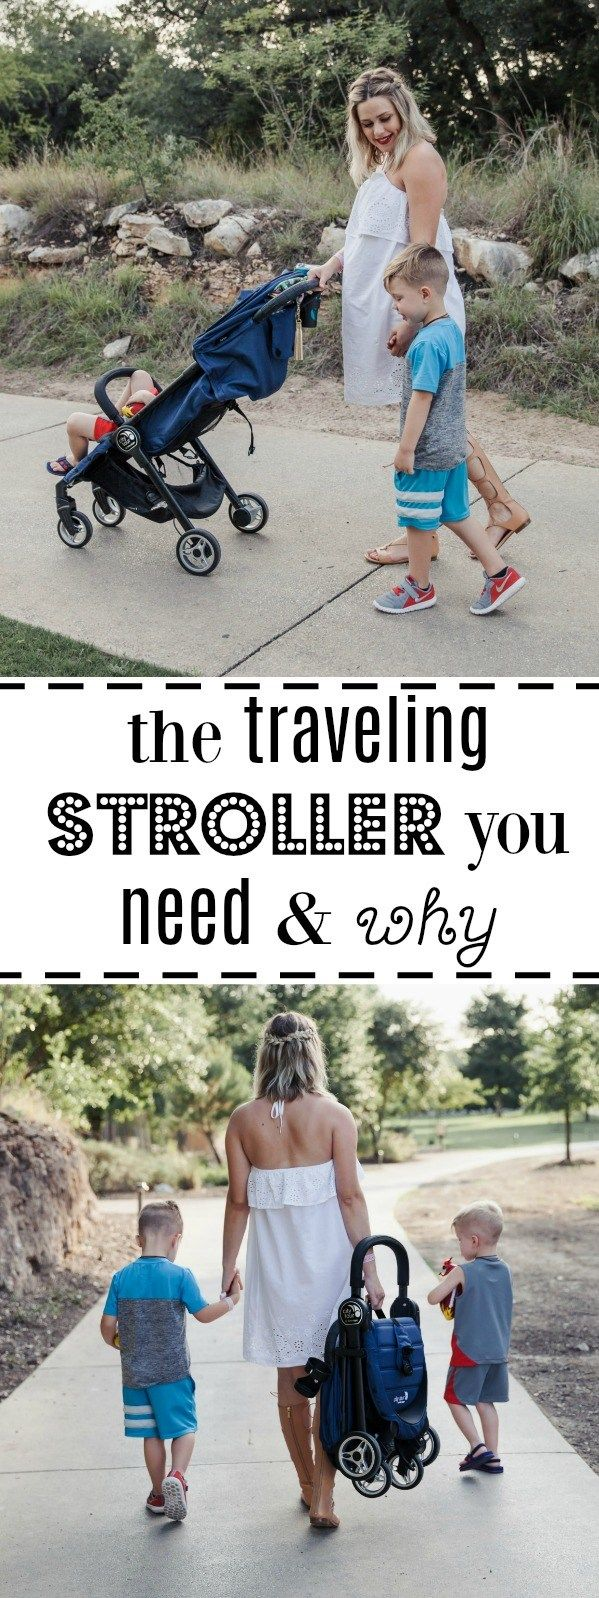 Baby Jogger City Tour Stroller Review Baby jogger city